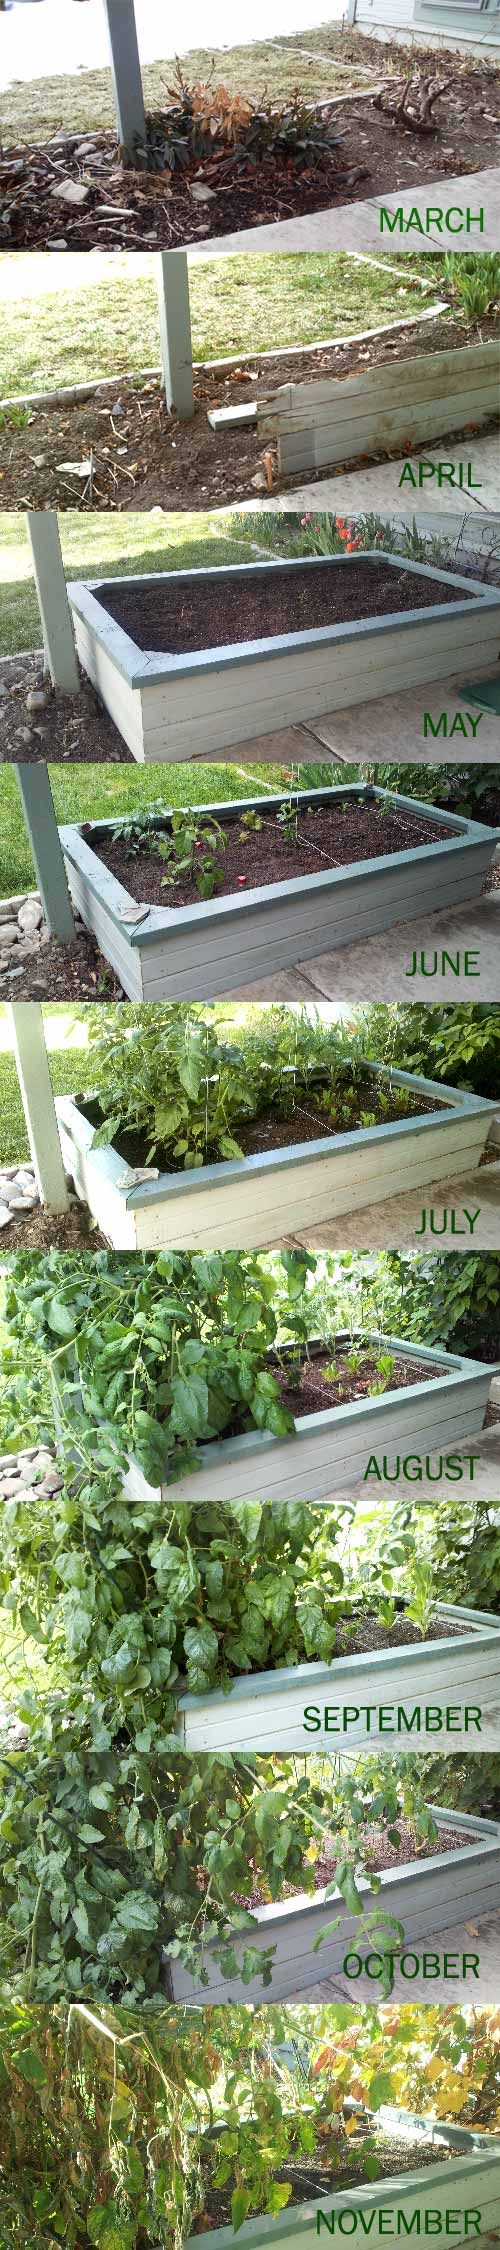 Progress of our raised bed in November